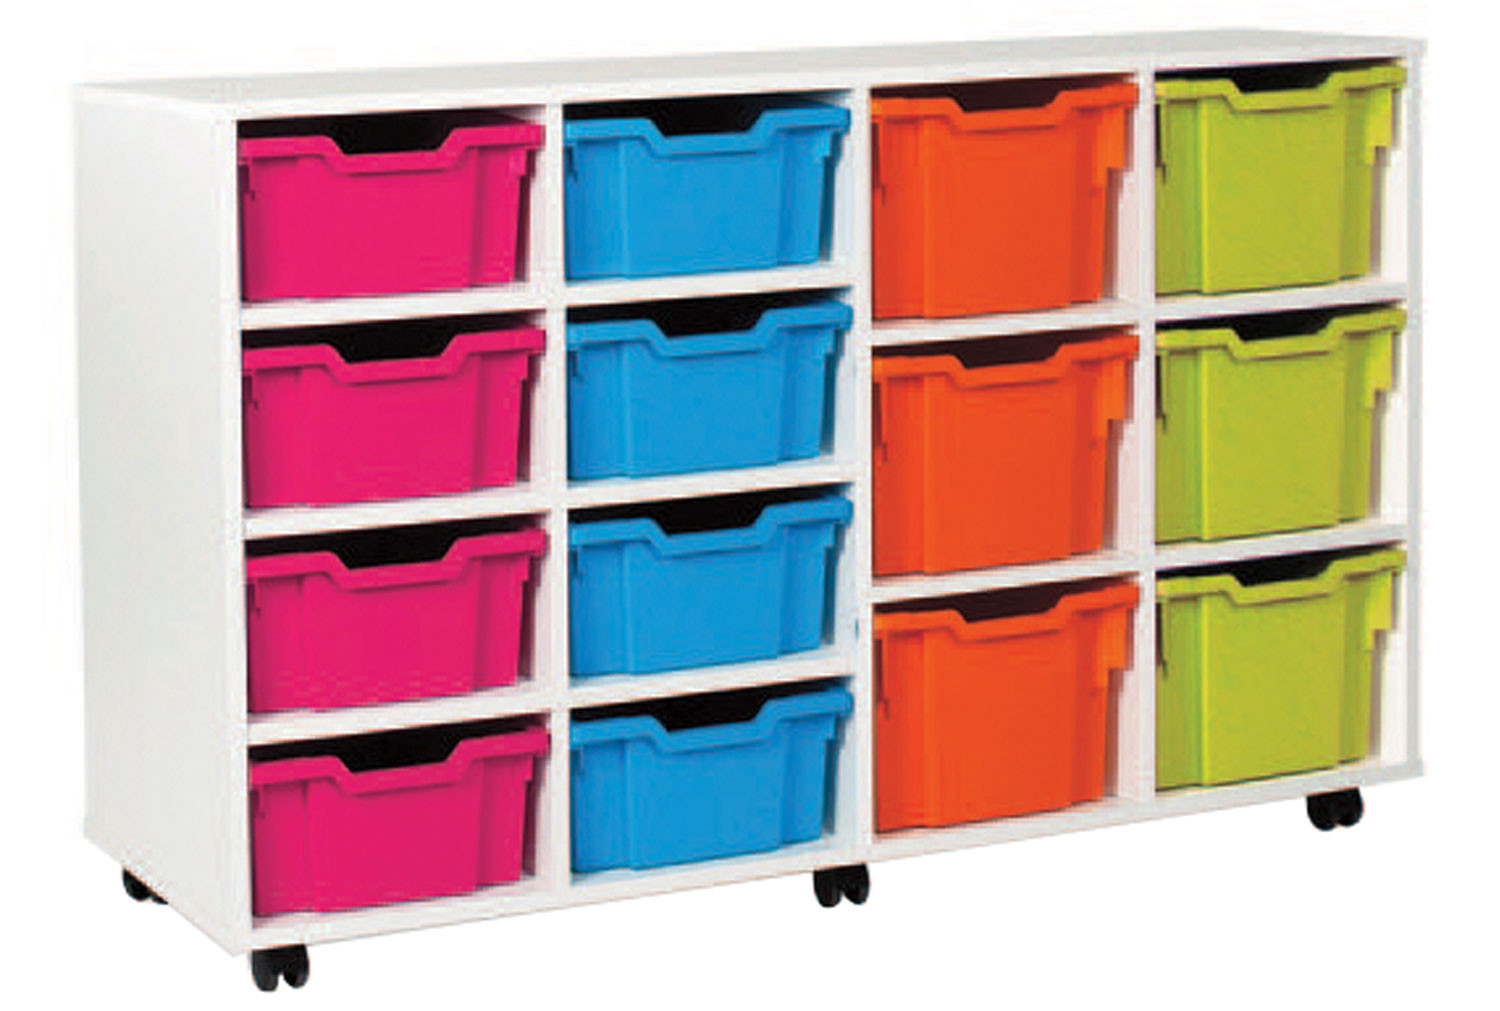 White 8 Deep, 6 Extra Deep Tray Storage Unit. Find Loads More Colours, Materials & Styles Online - Buy Office Furniture Online